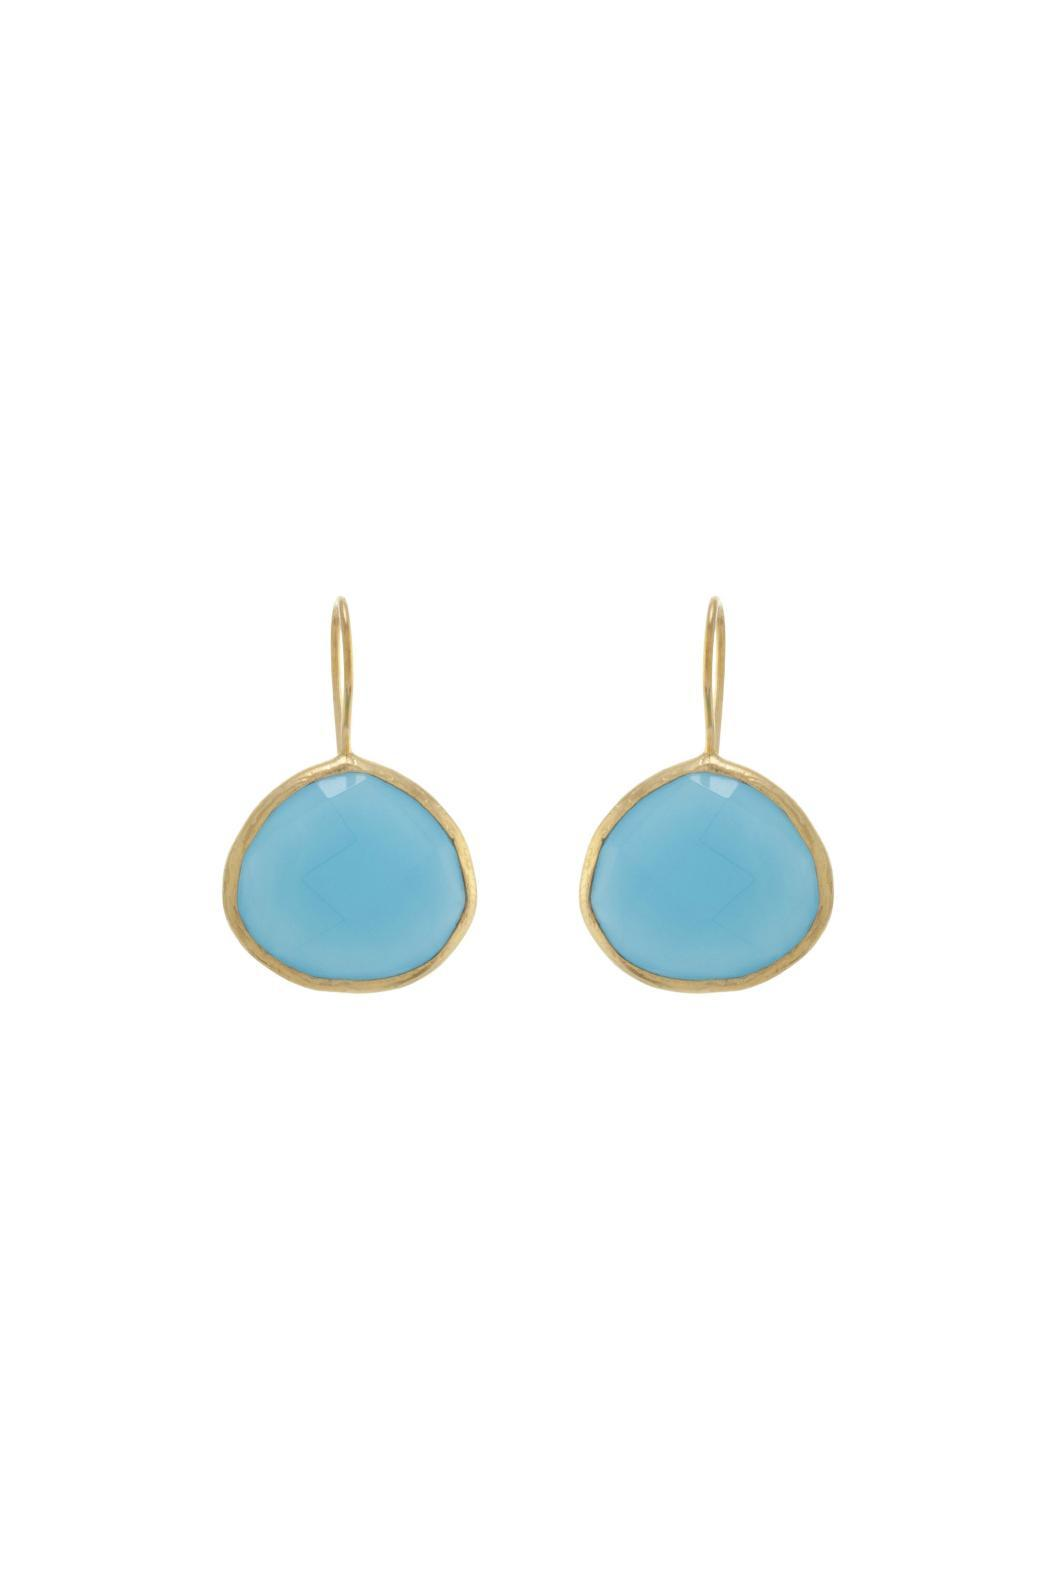 Gemma Collection Blue Chalcedony Earrings - Main Image